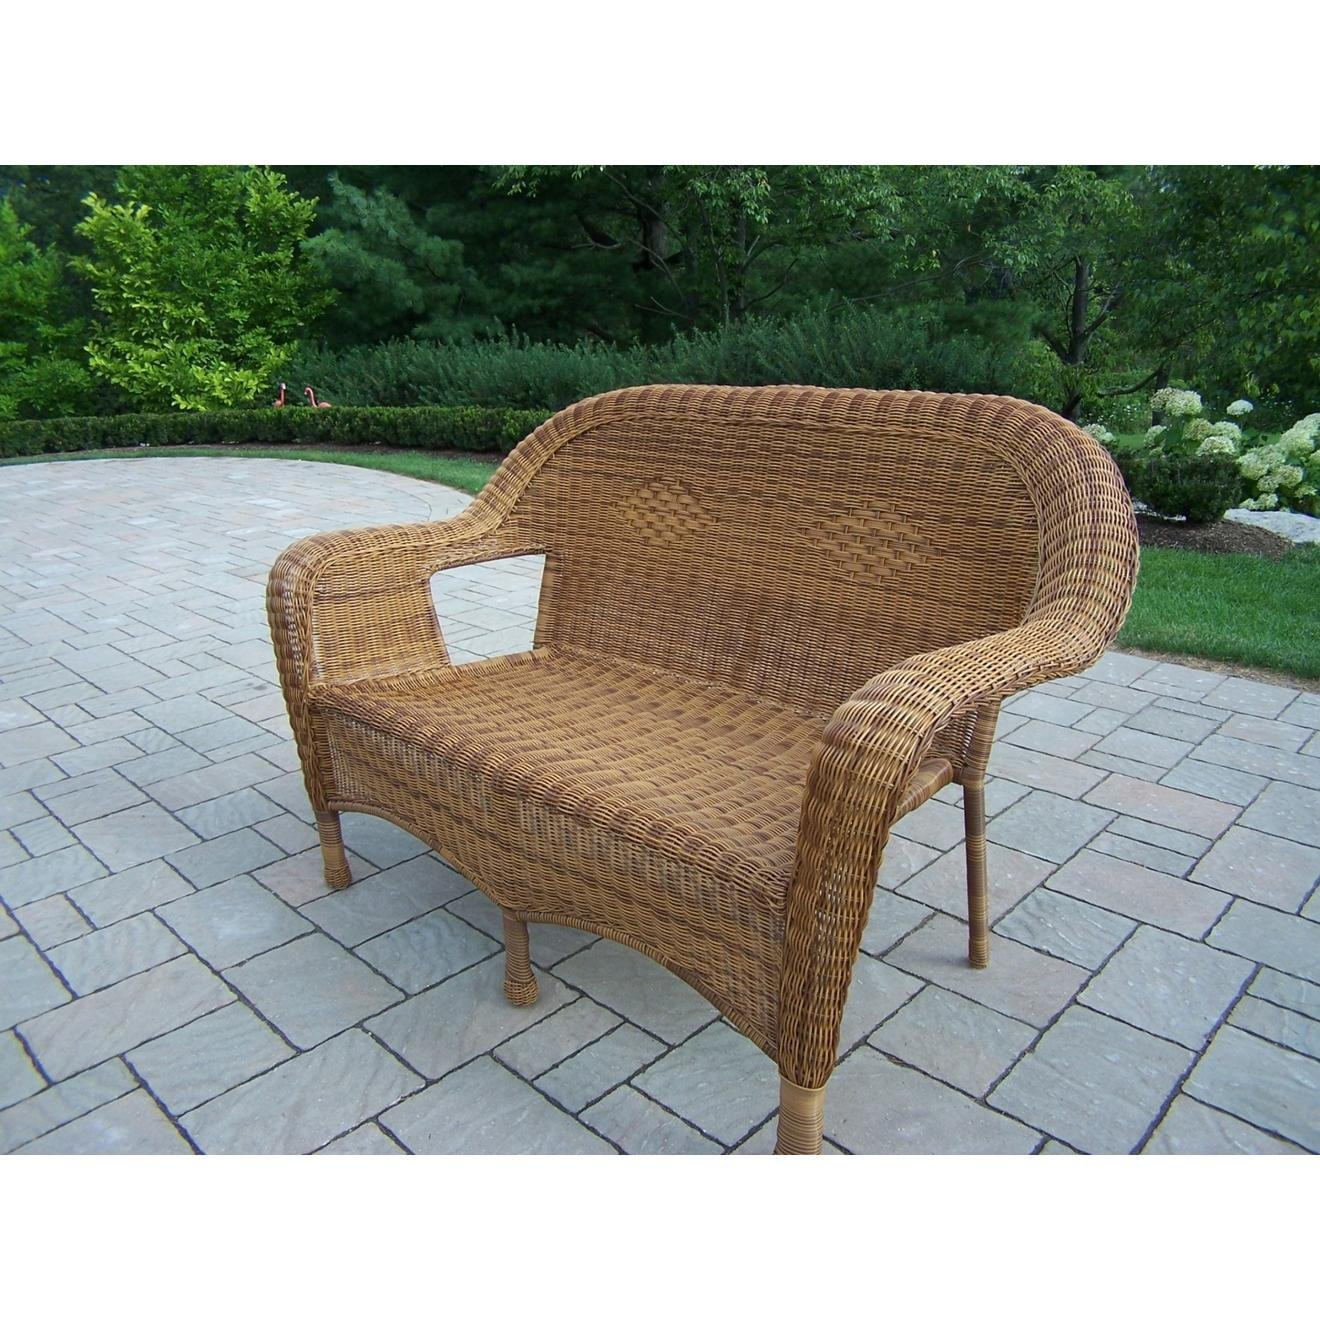 Amazon.com : Oakland Living Resin Wicker Loveseat, Natural : Outdoor And Patio  Furniture Sets : Garden U0026 Outdoor